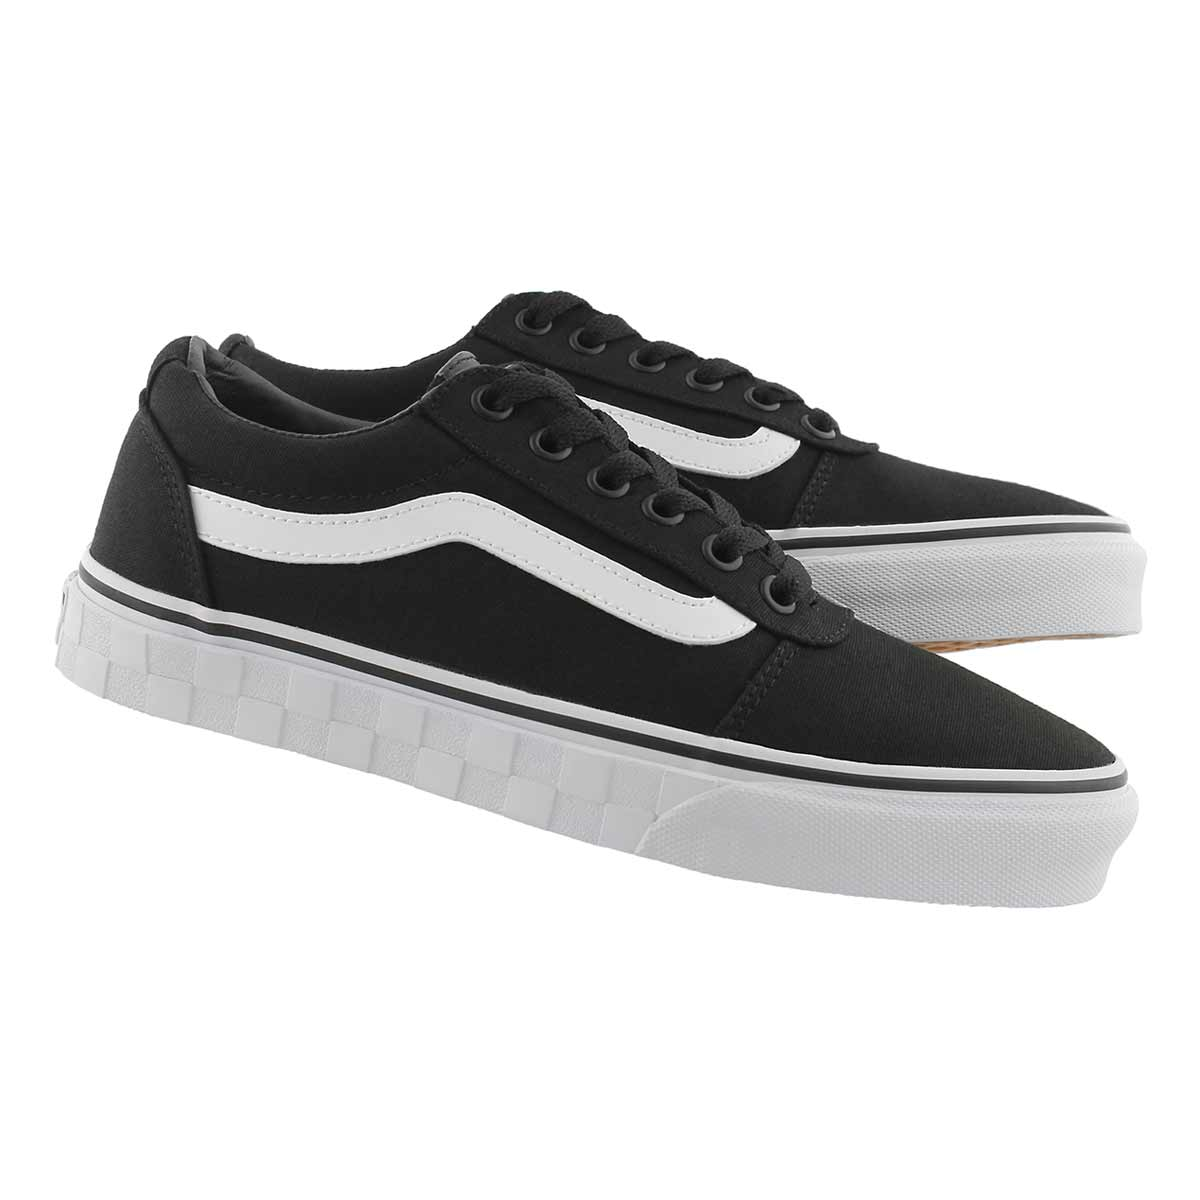 b2d174525 Vans Women's WARD DELUXE black lace up sneake | Softmoc.com